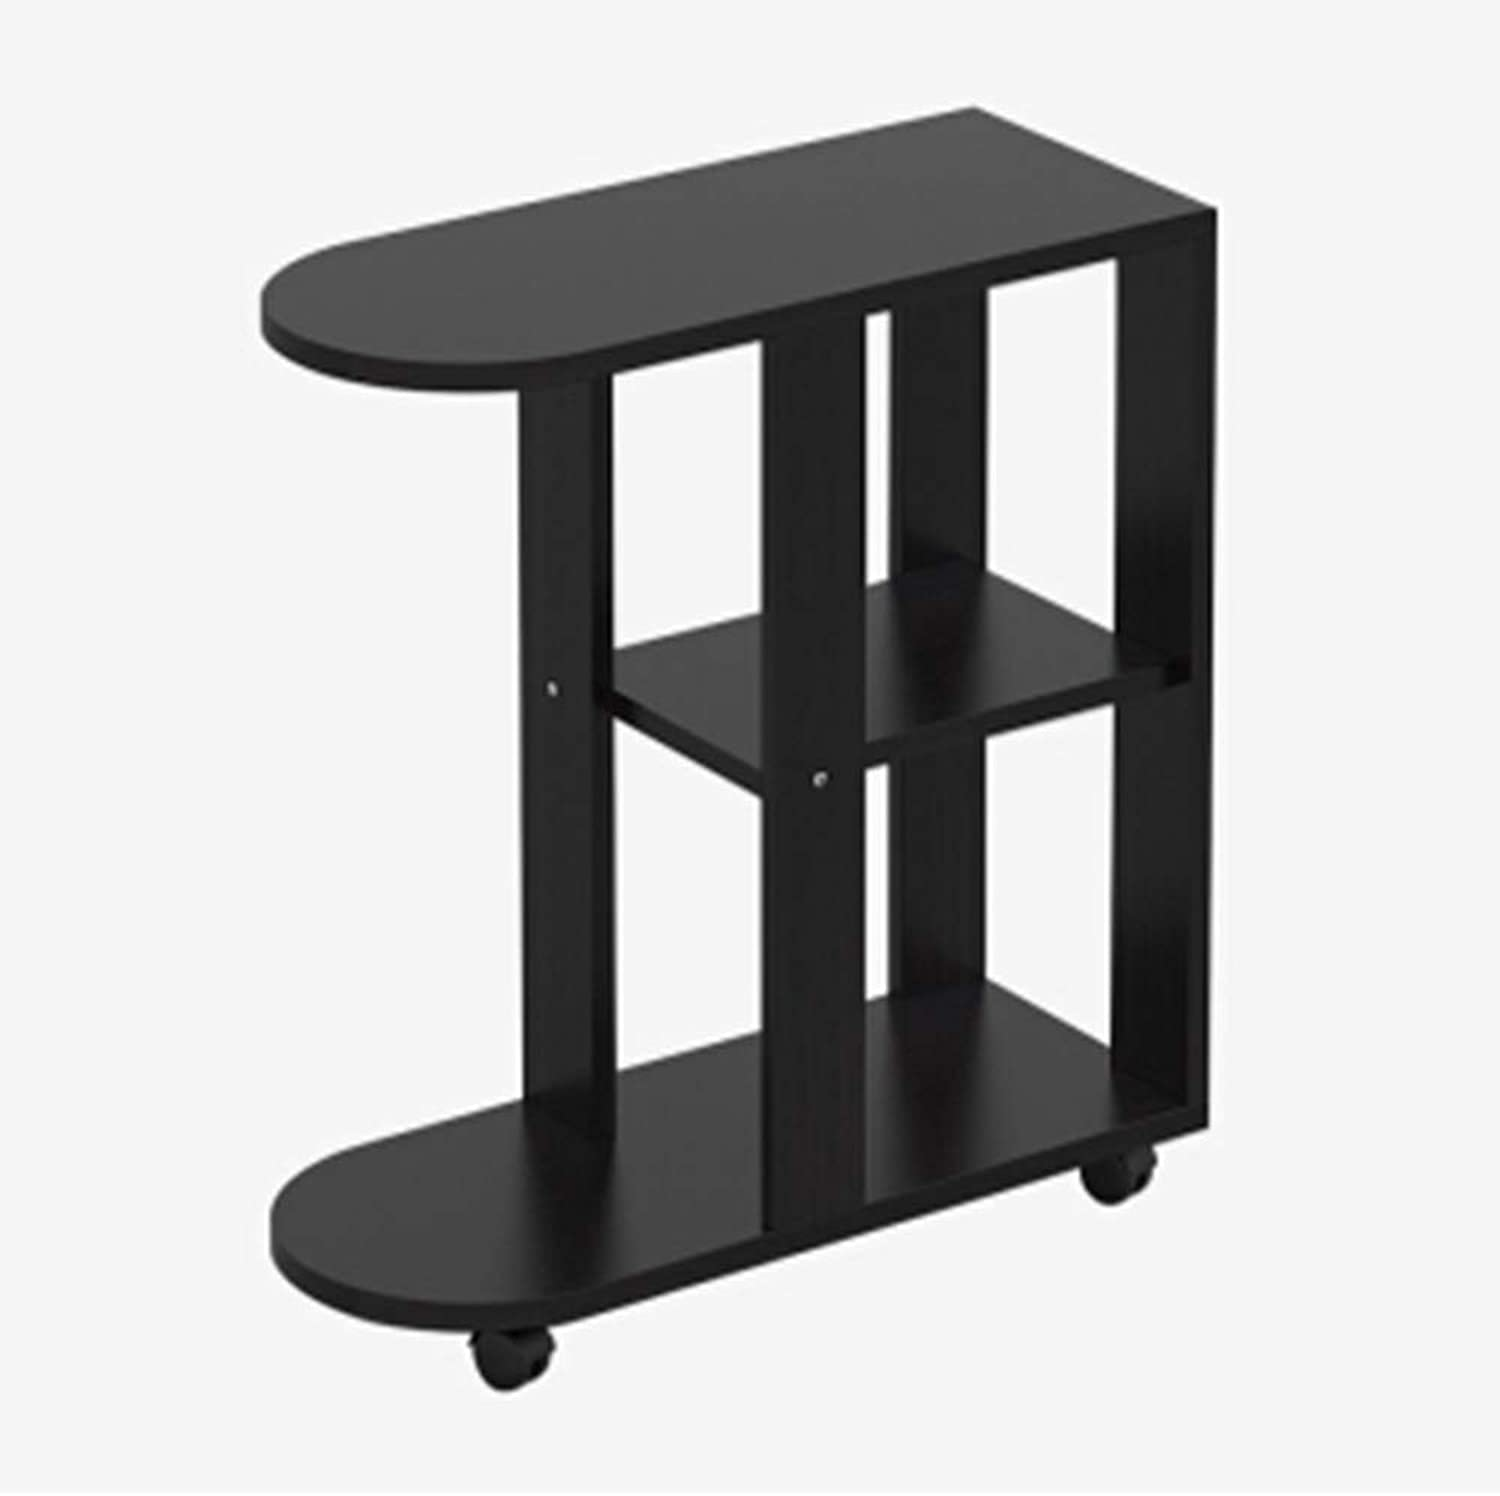 Small Coffee Table MDF Side Table Three-Story Sofa Table Multi-Function Small Dining Table 3 colors (color   Black)